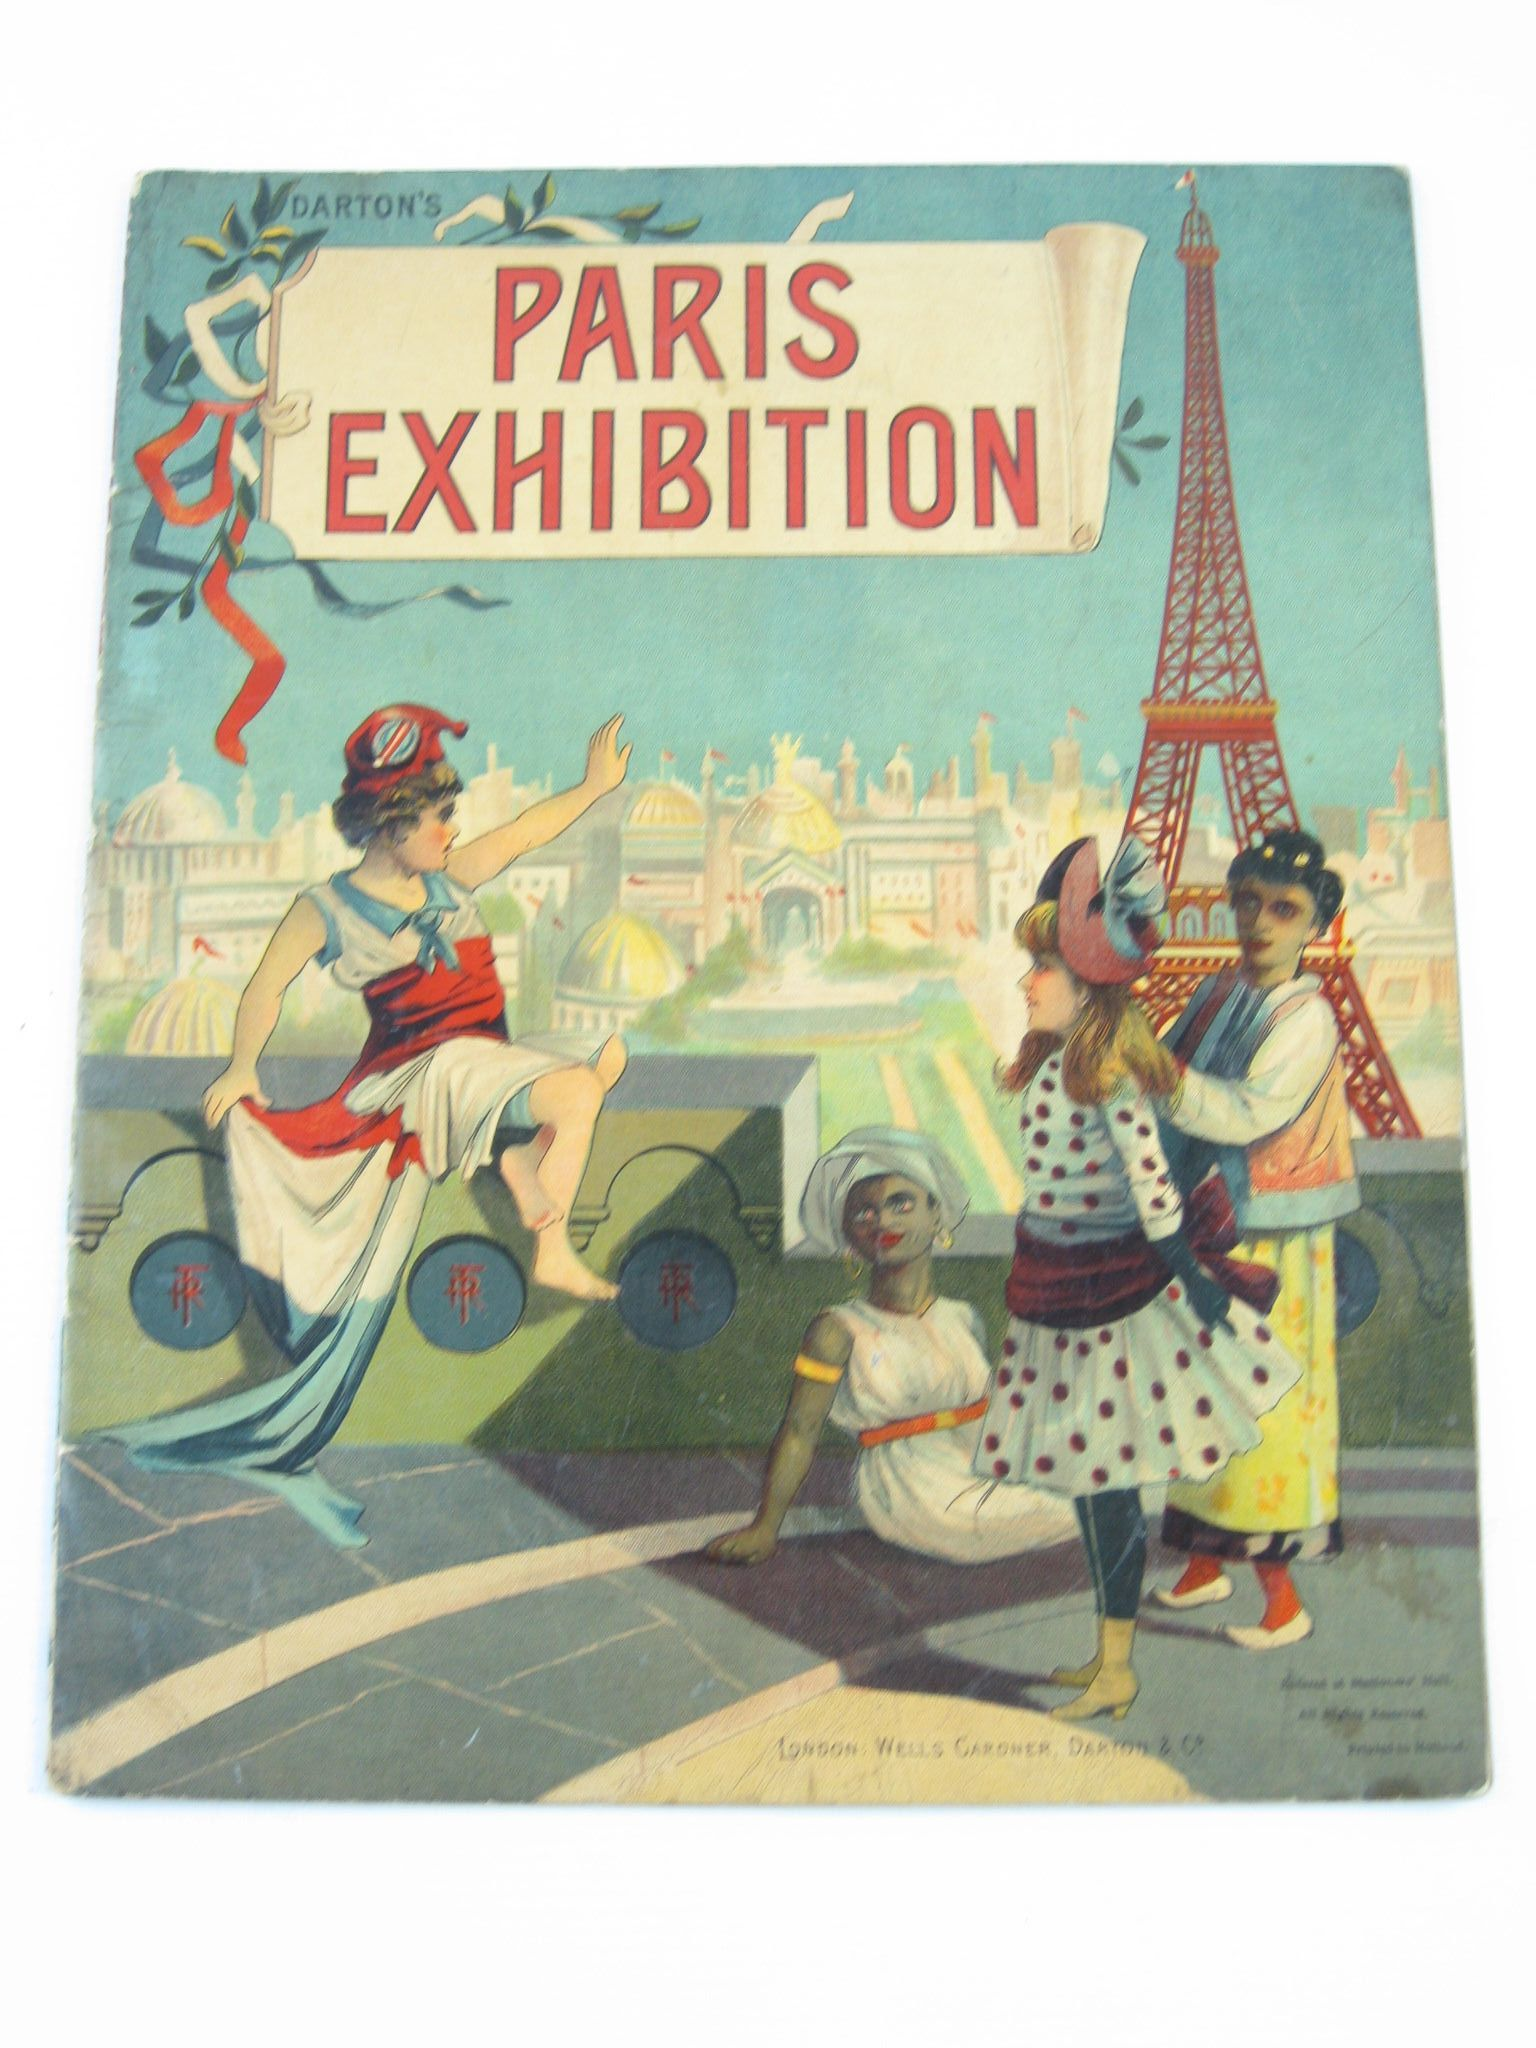 Photo of DARTON'S PARIS EXHIBITION published by Wells Gardner, Darton & Co. (STOCK CODE: 1311372)  for sale by Stella & Rose's Books